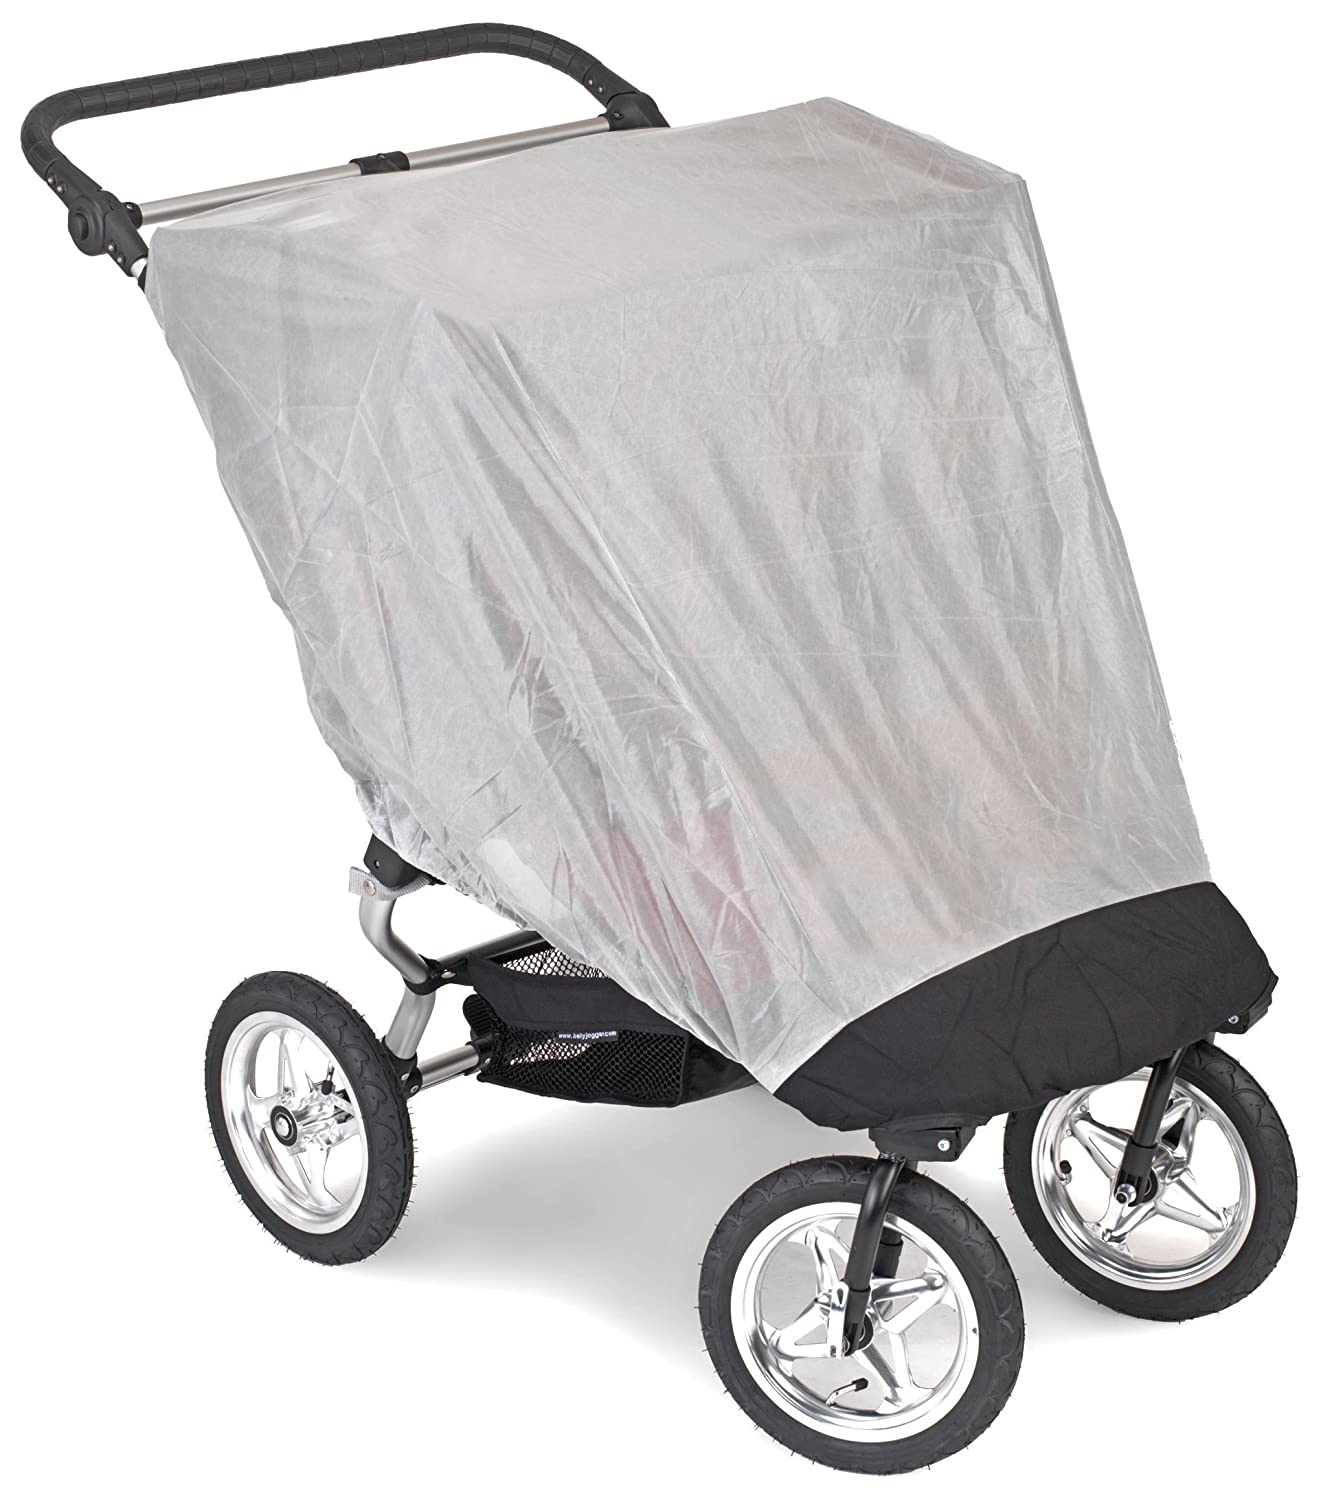 Amazon.com: Baby Jogger Summit 360 Cochecito de bebé doble ...